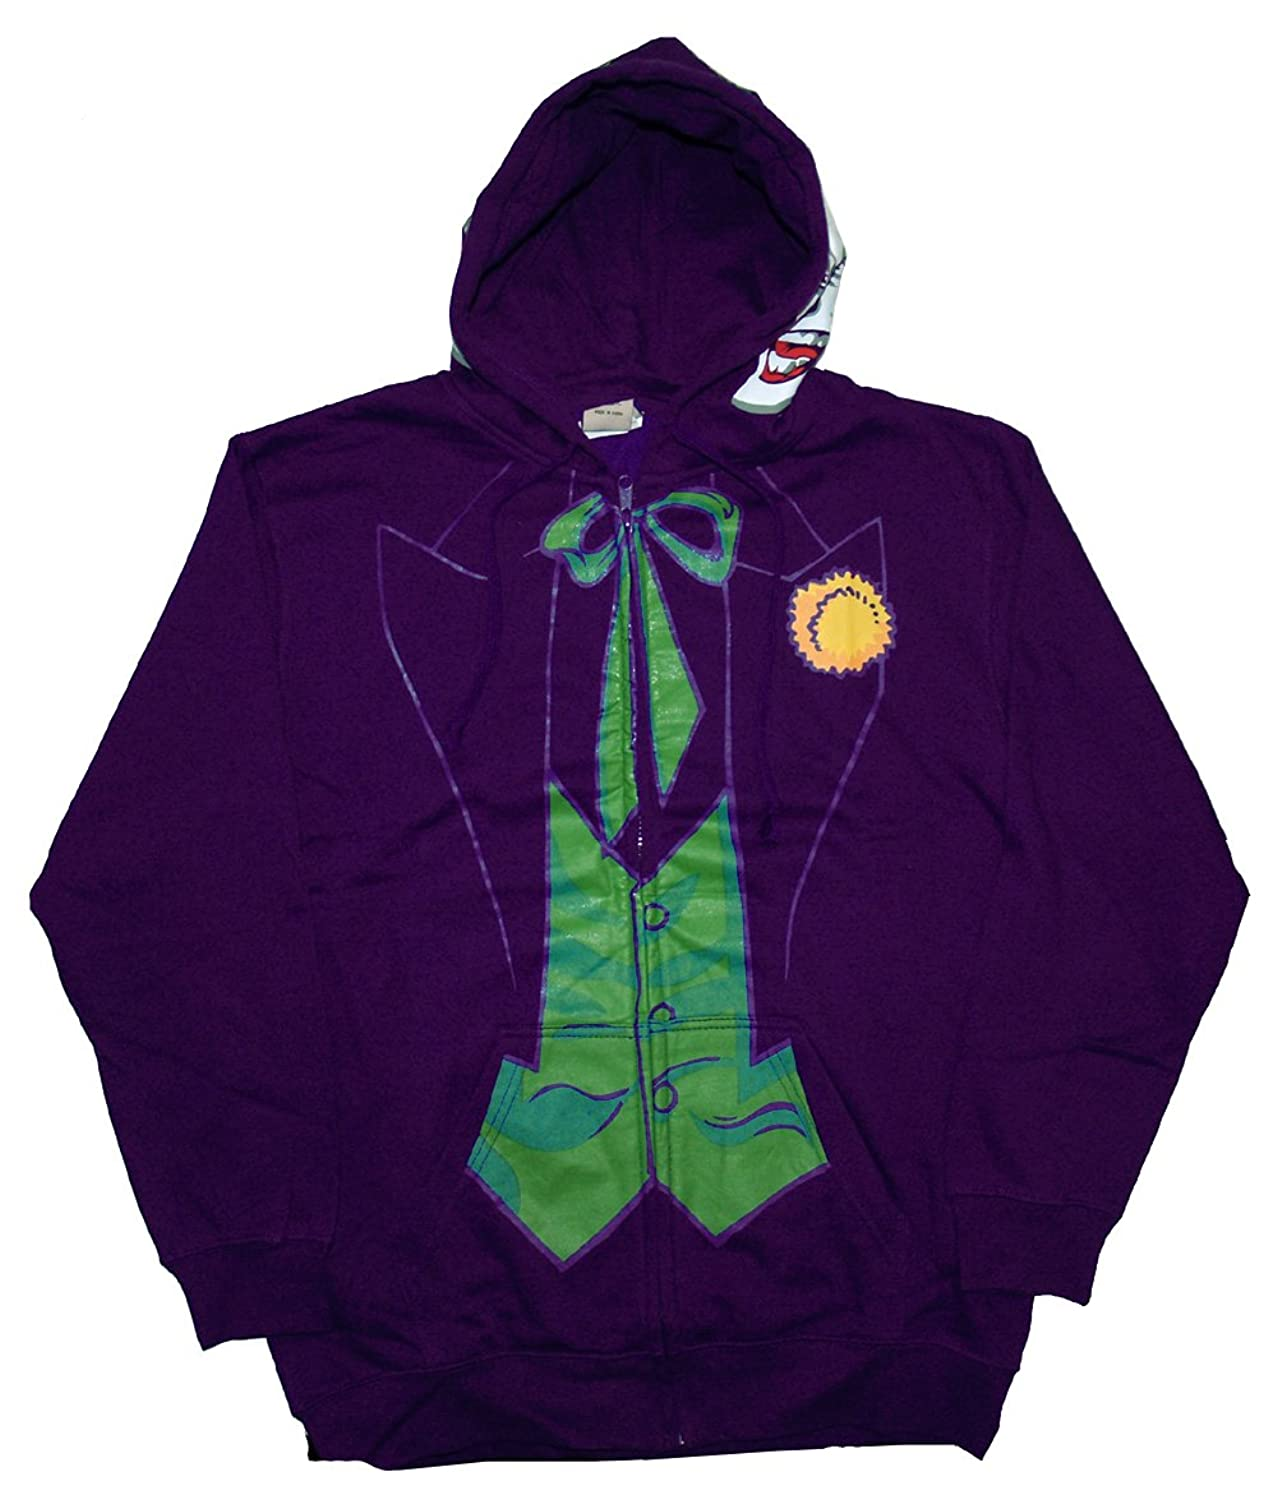 Amazon.com: Mens DC Comics The Joker Costume Hoodie S Purple: Clothing